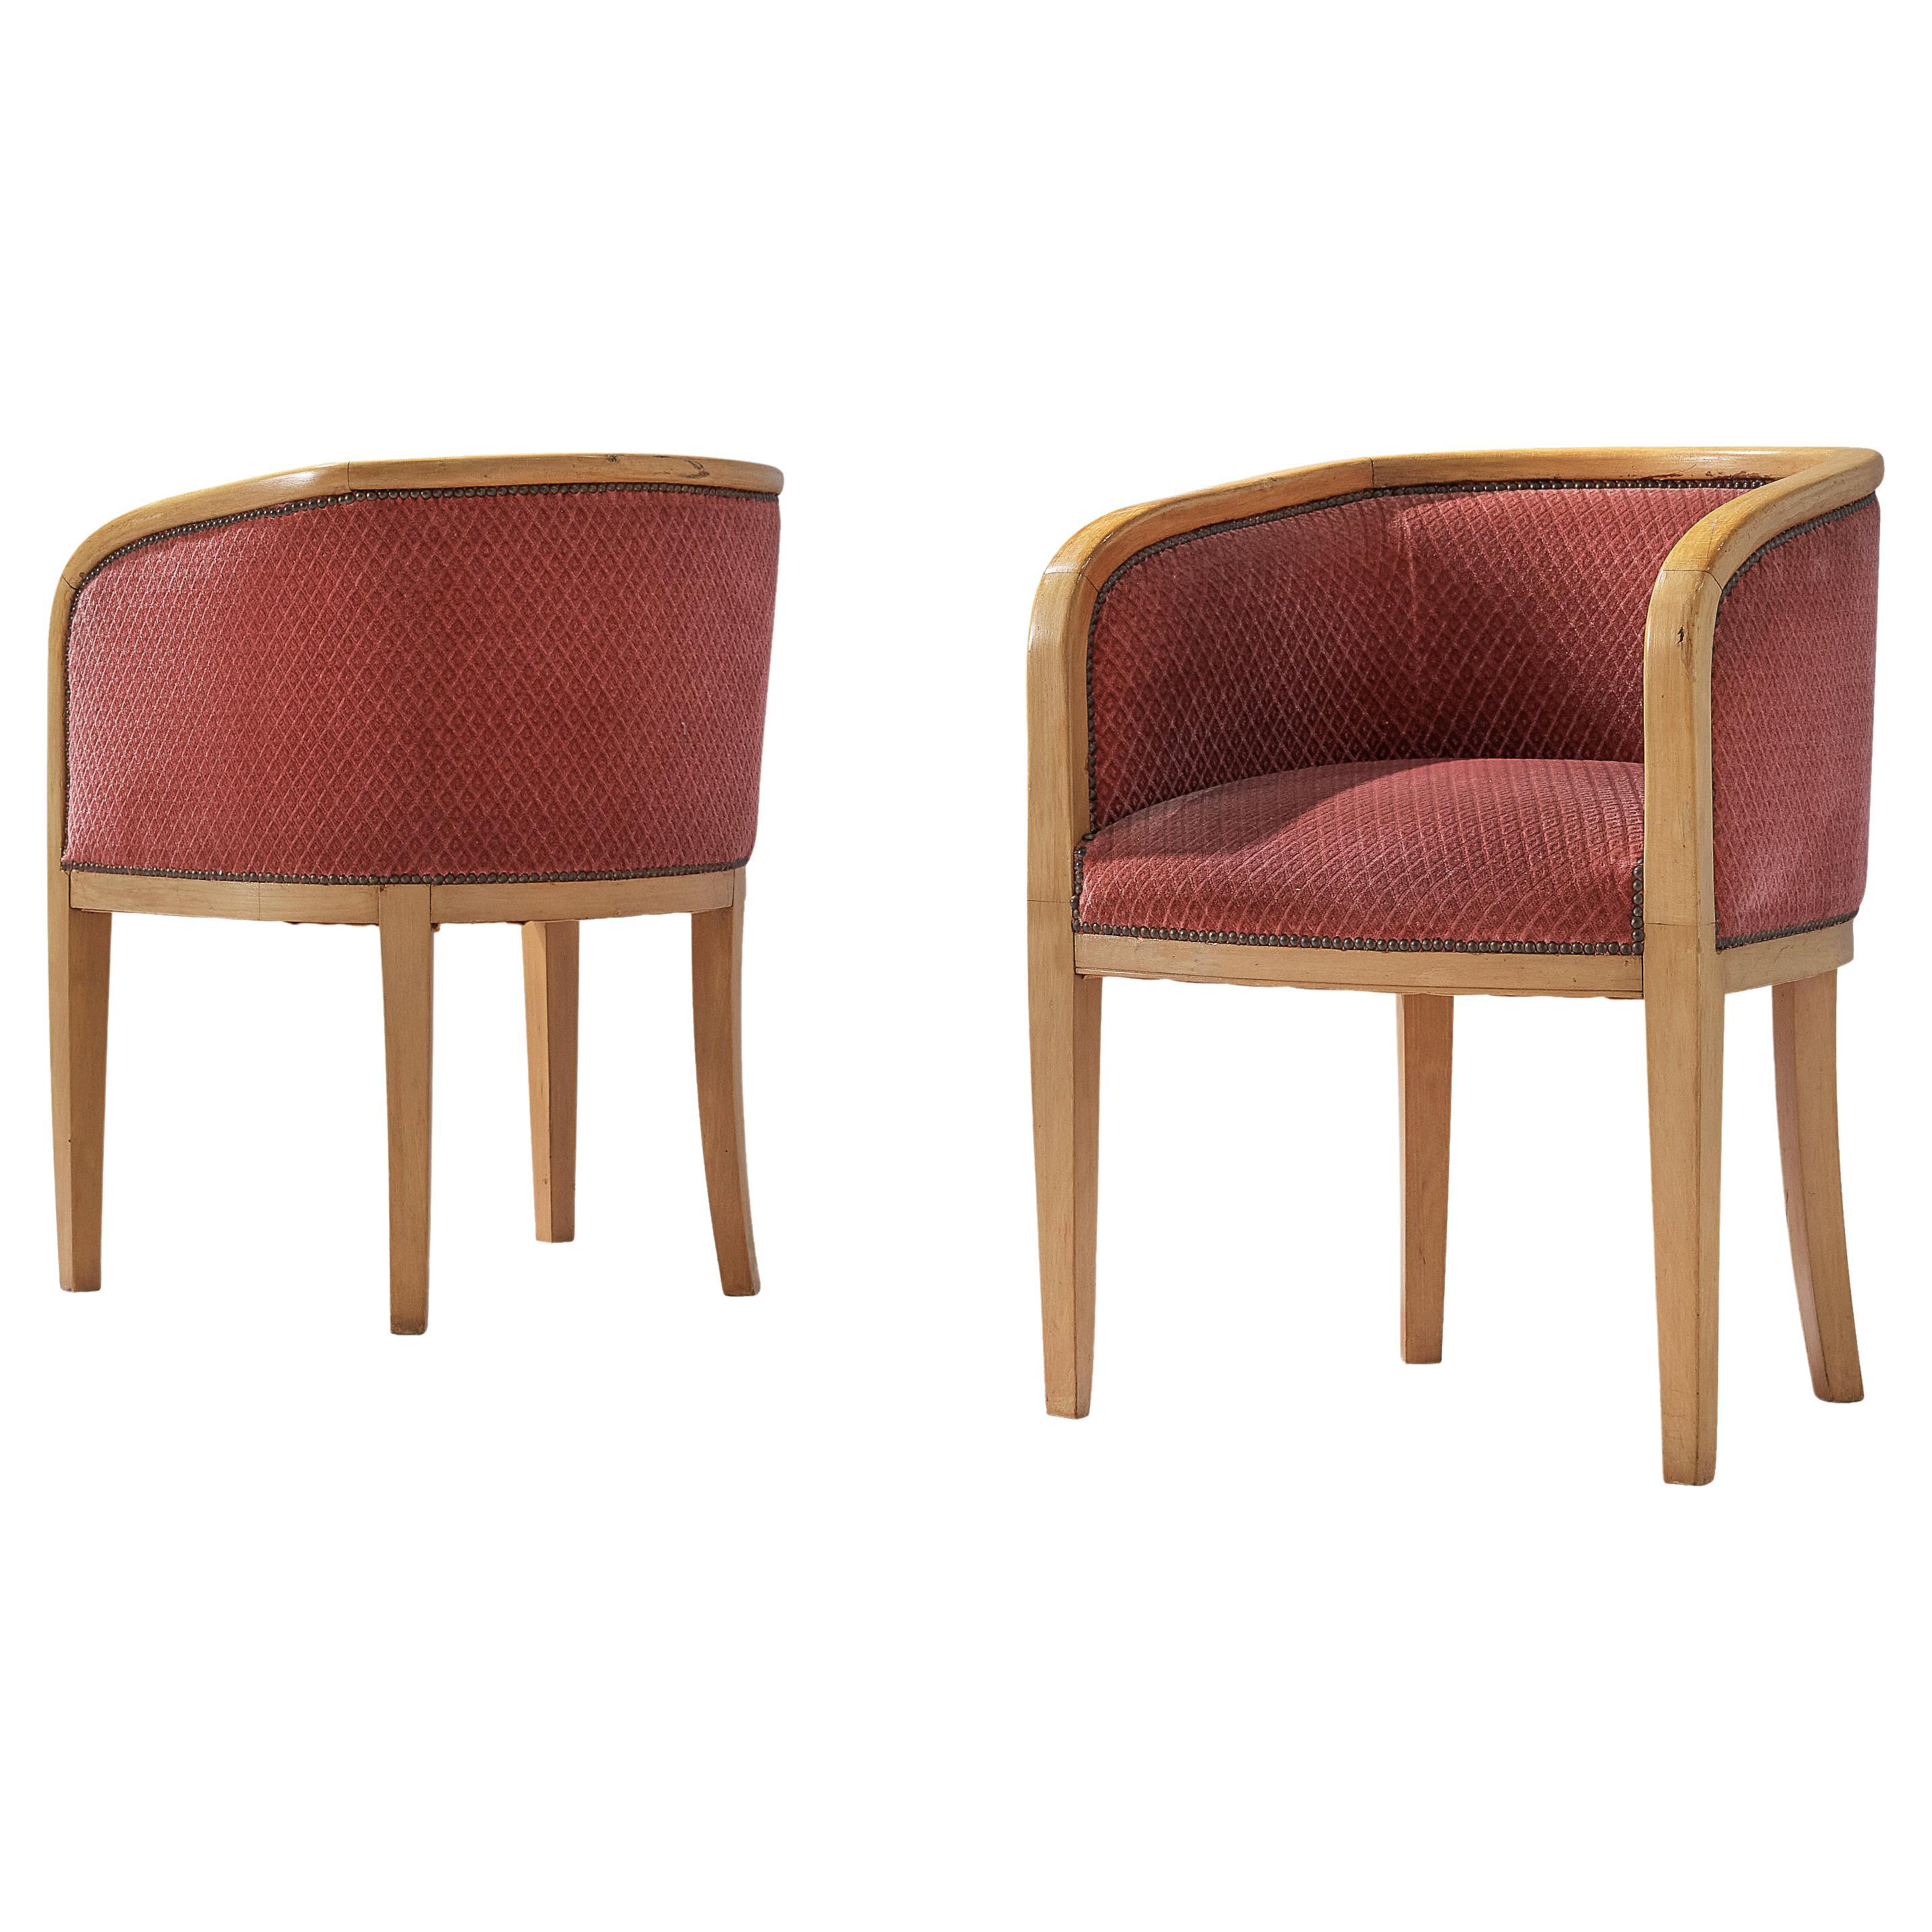 Pair of Danish Armchairs in Soft Pink Textured Fabric